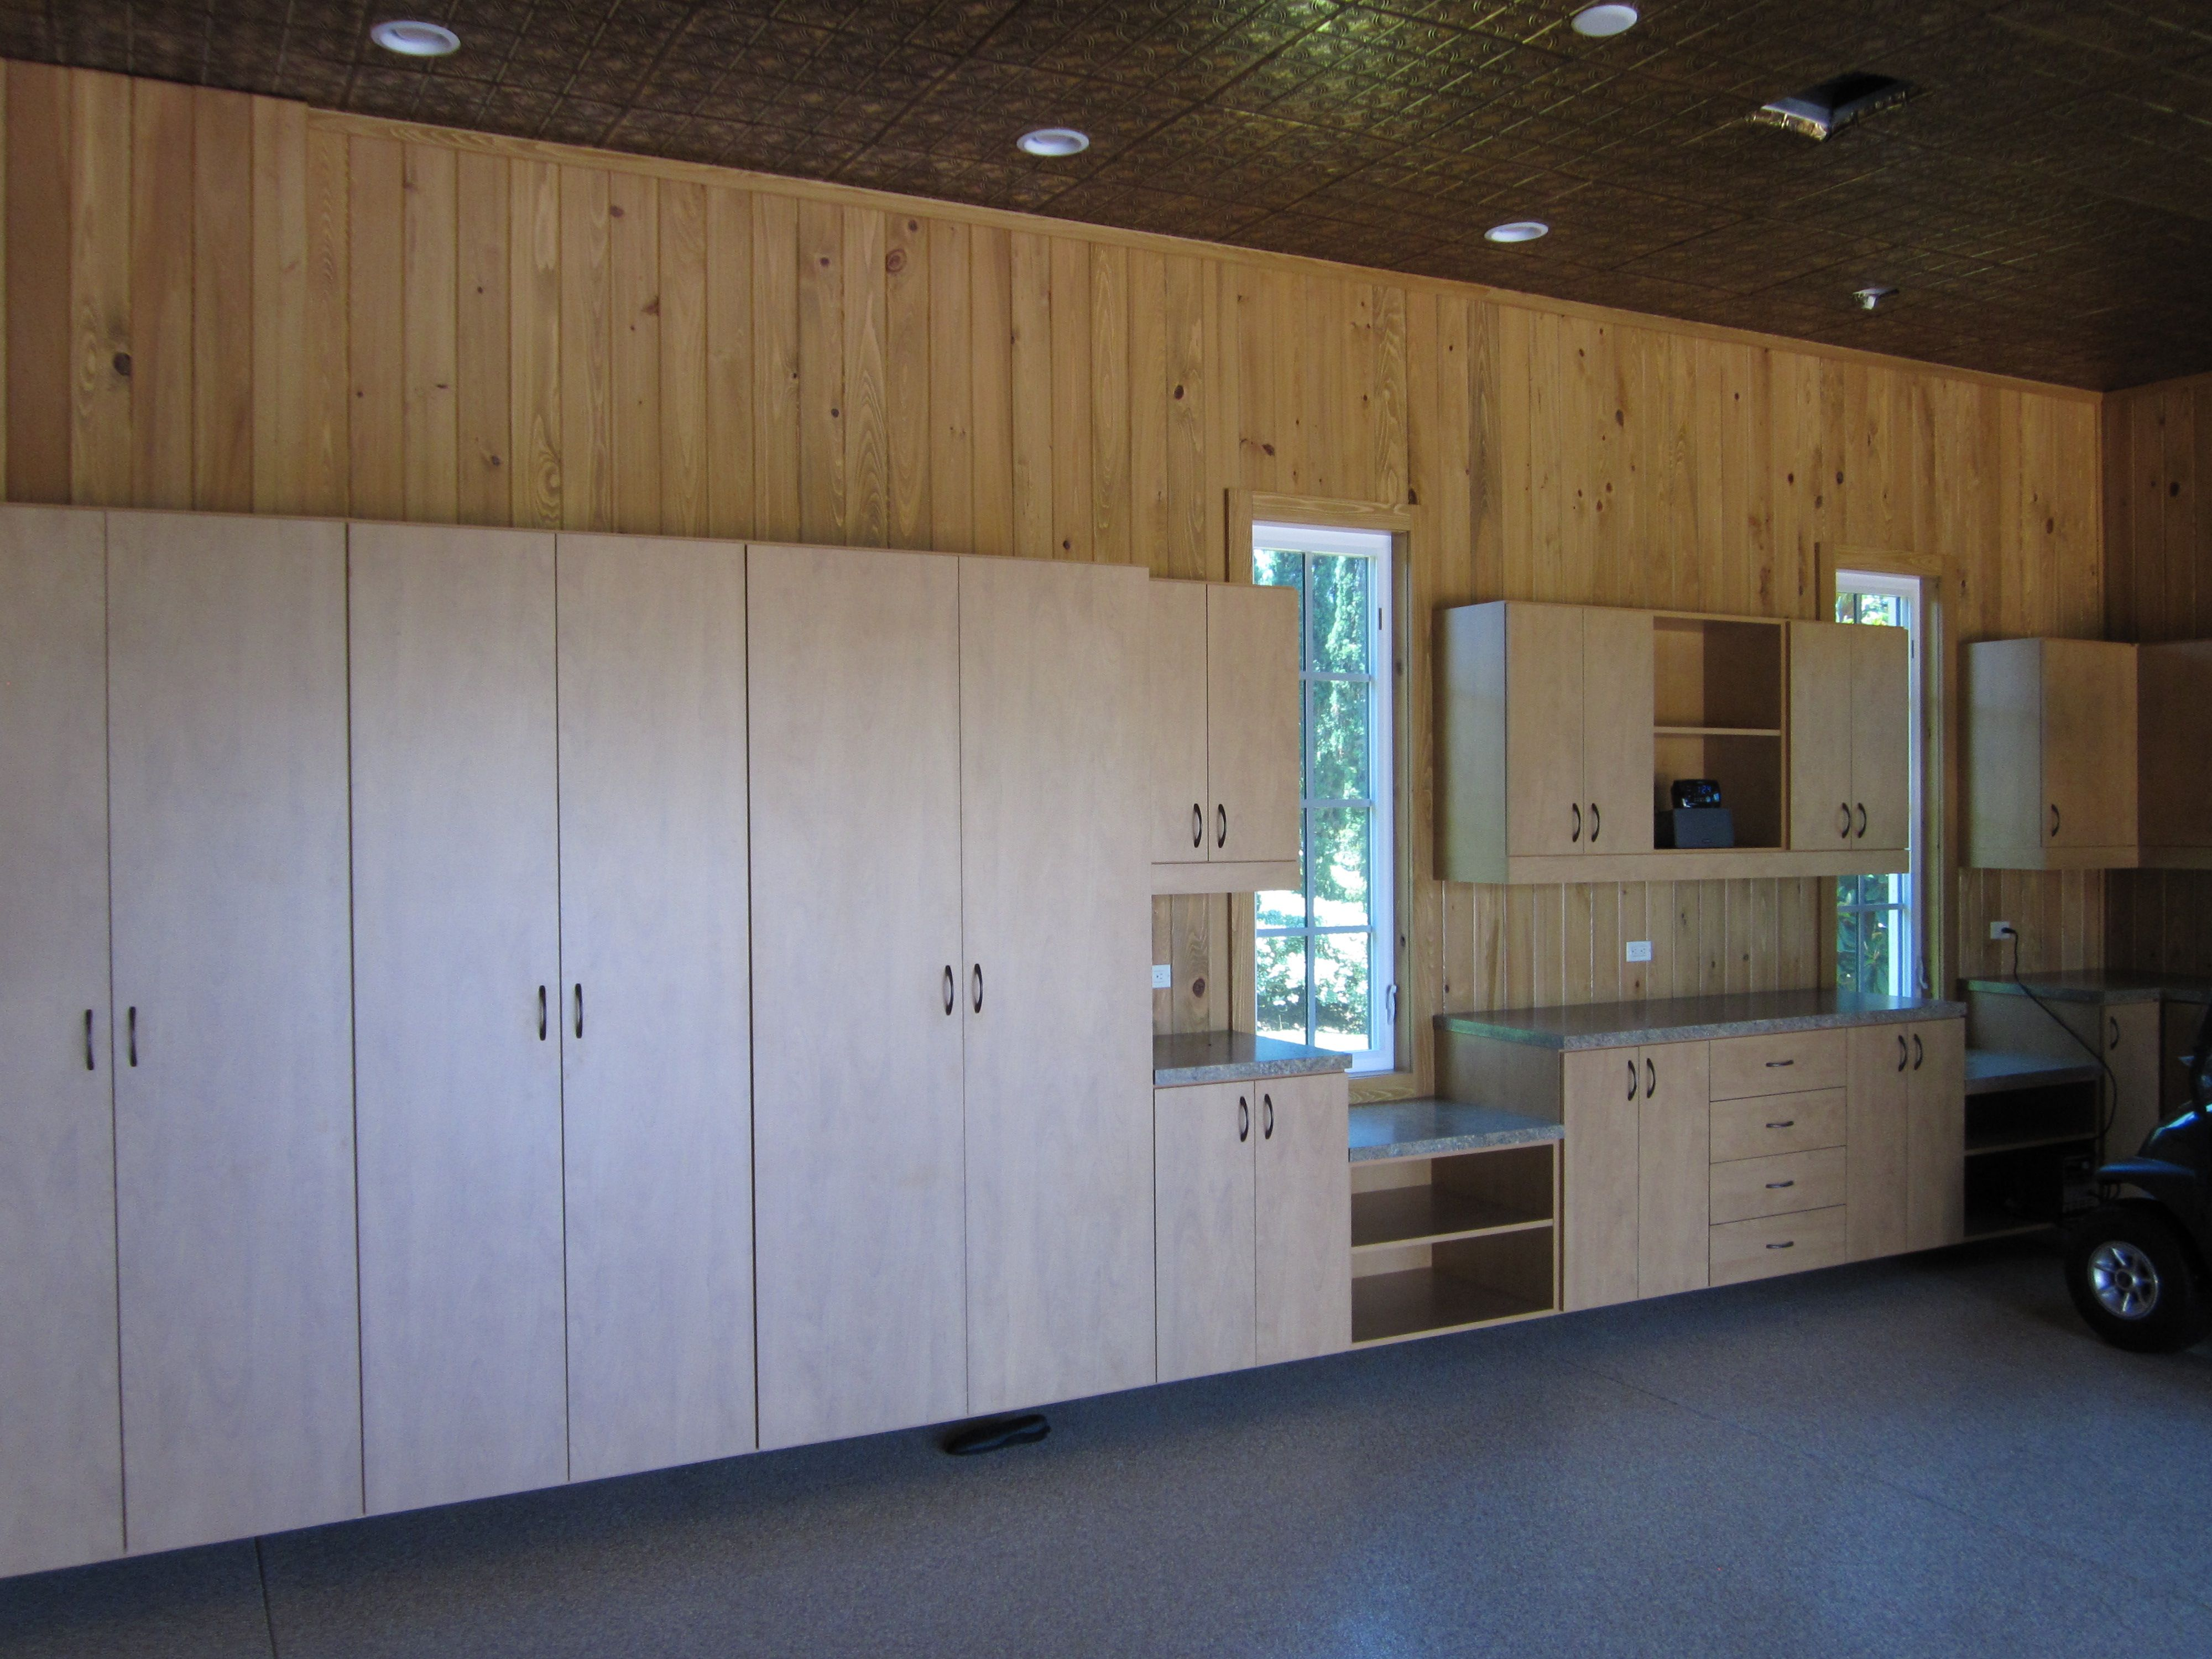 Custom Garage Furniture Man Cave Workshop Cabinet Cabinetry Murphy Bed  Storage Space Saver More Space Place